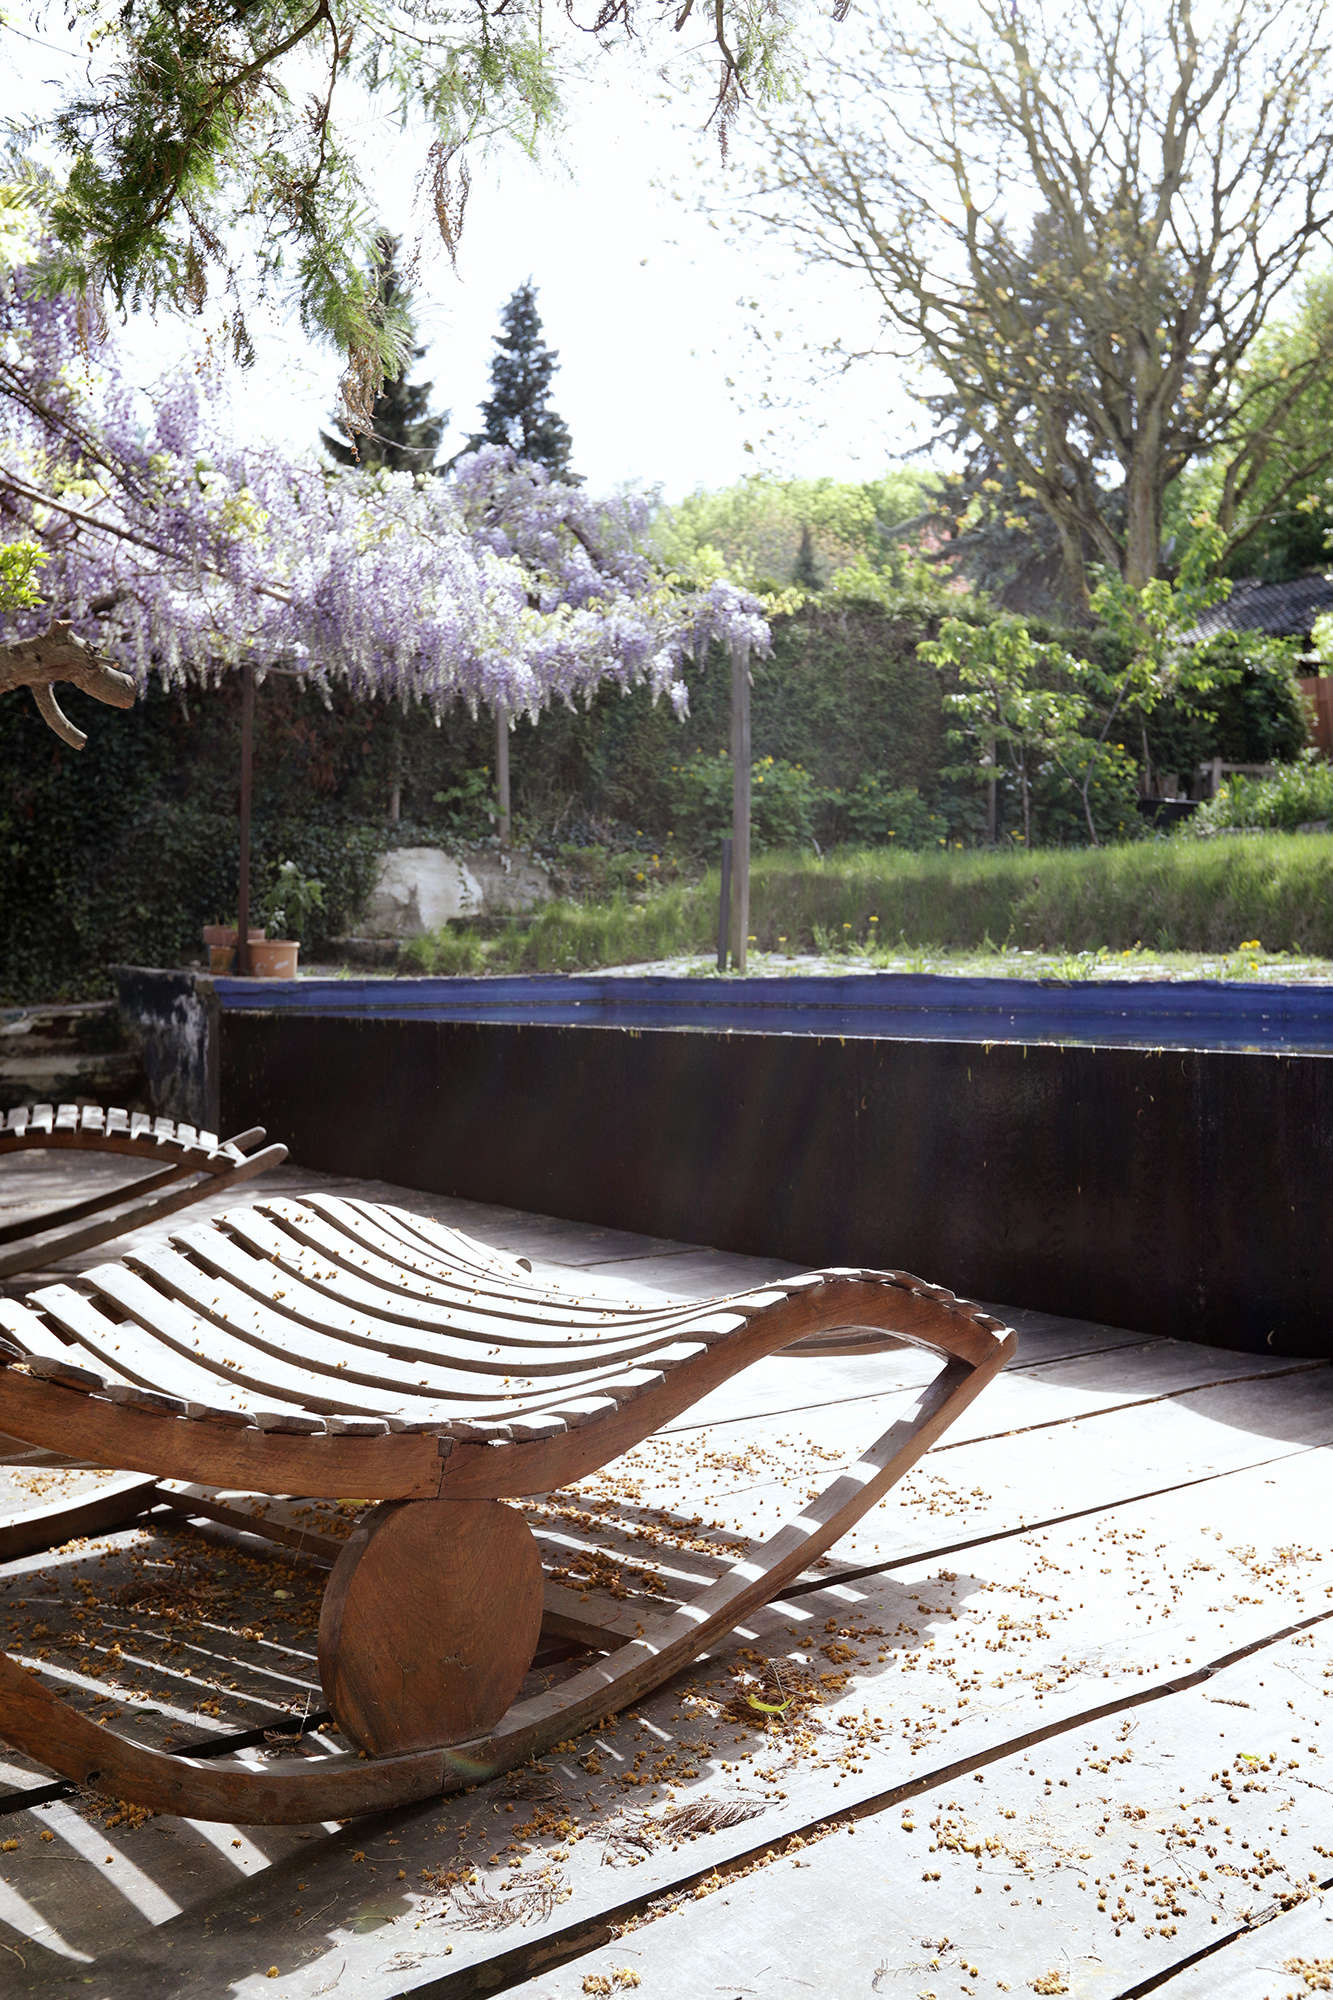 """The -meter-long (about 33-foot-long) pool is filled to the brim. """"When I swim the water is constantly falling over the front, but it adds a calm sound that works nicely with the Meuse river directly behind it.""""Valentin, who makes and designs wood furniture, installed the oak deck floors himself."""